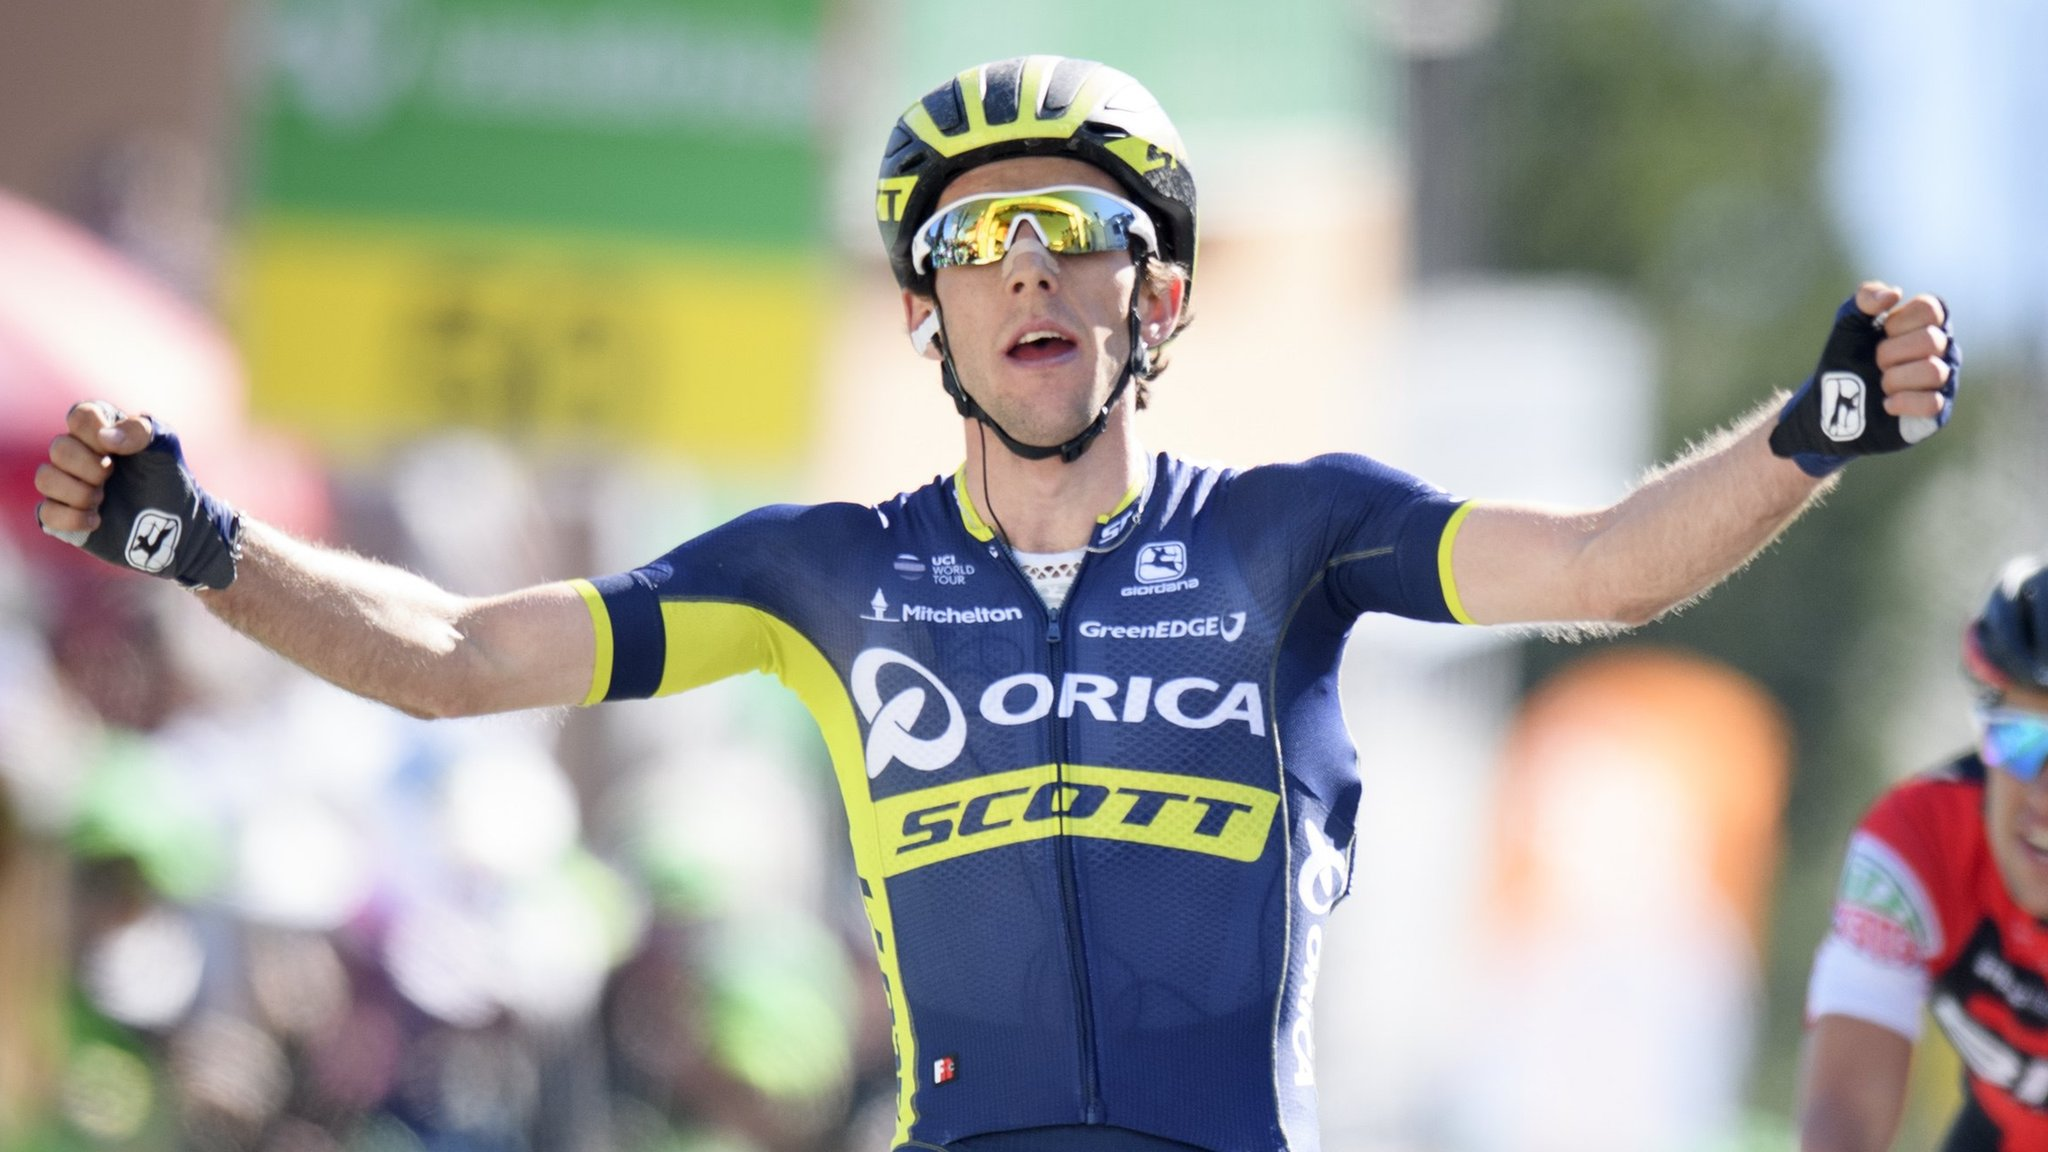 GB's Yates leads going into Romandie finale